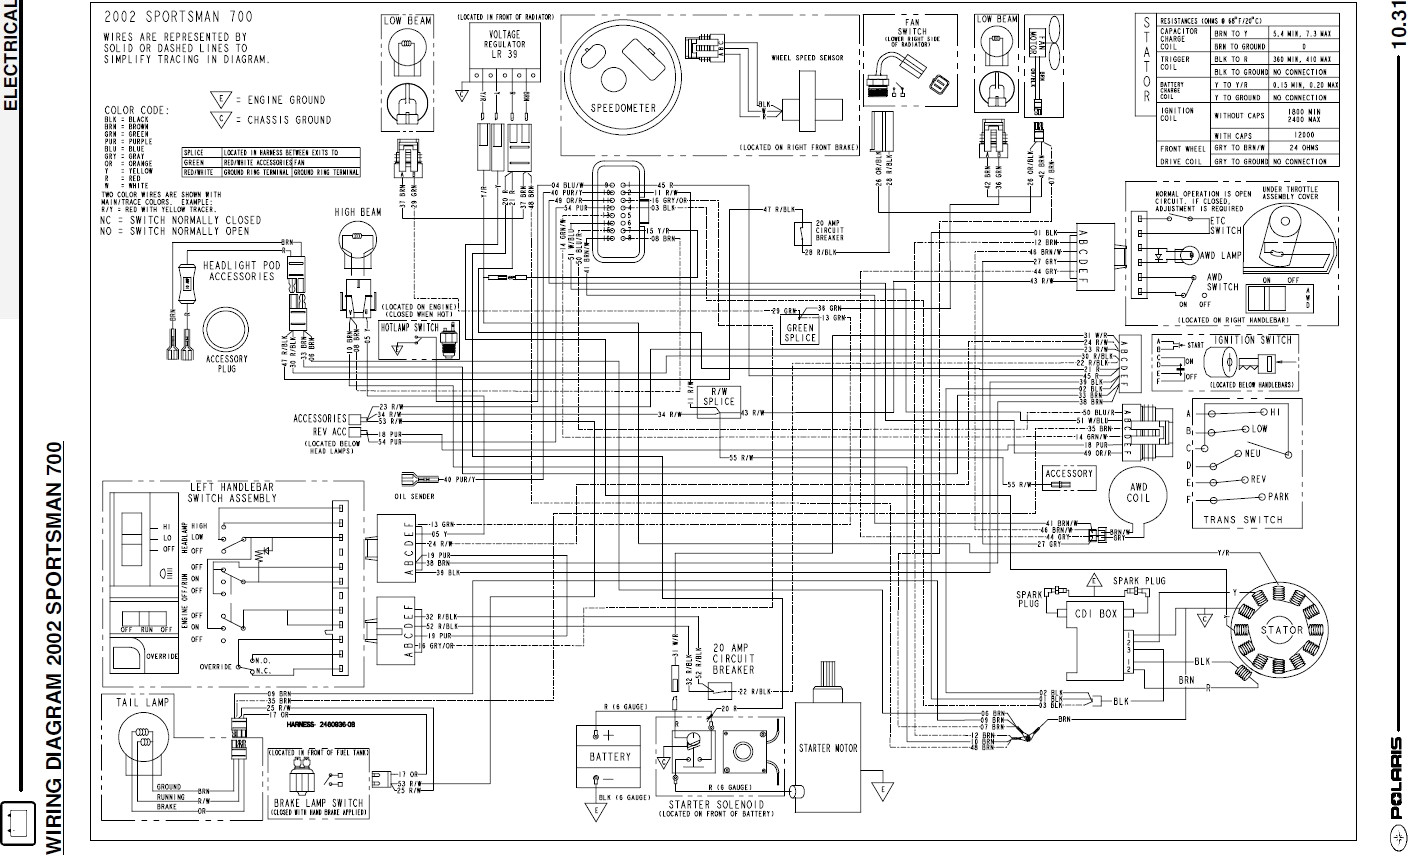 indy polaris sportsman 500 wiring diagram 1991 2009 sportsman 500 wiring diagram #2